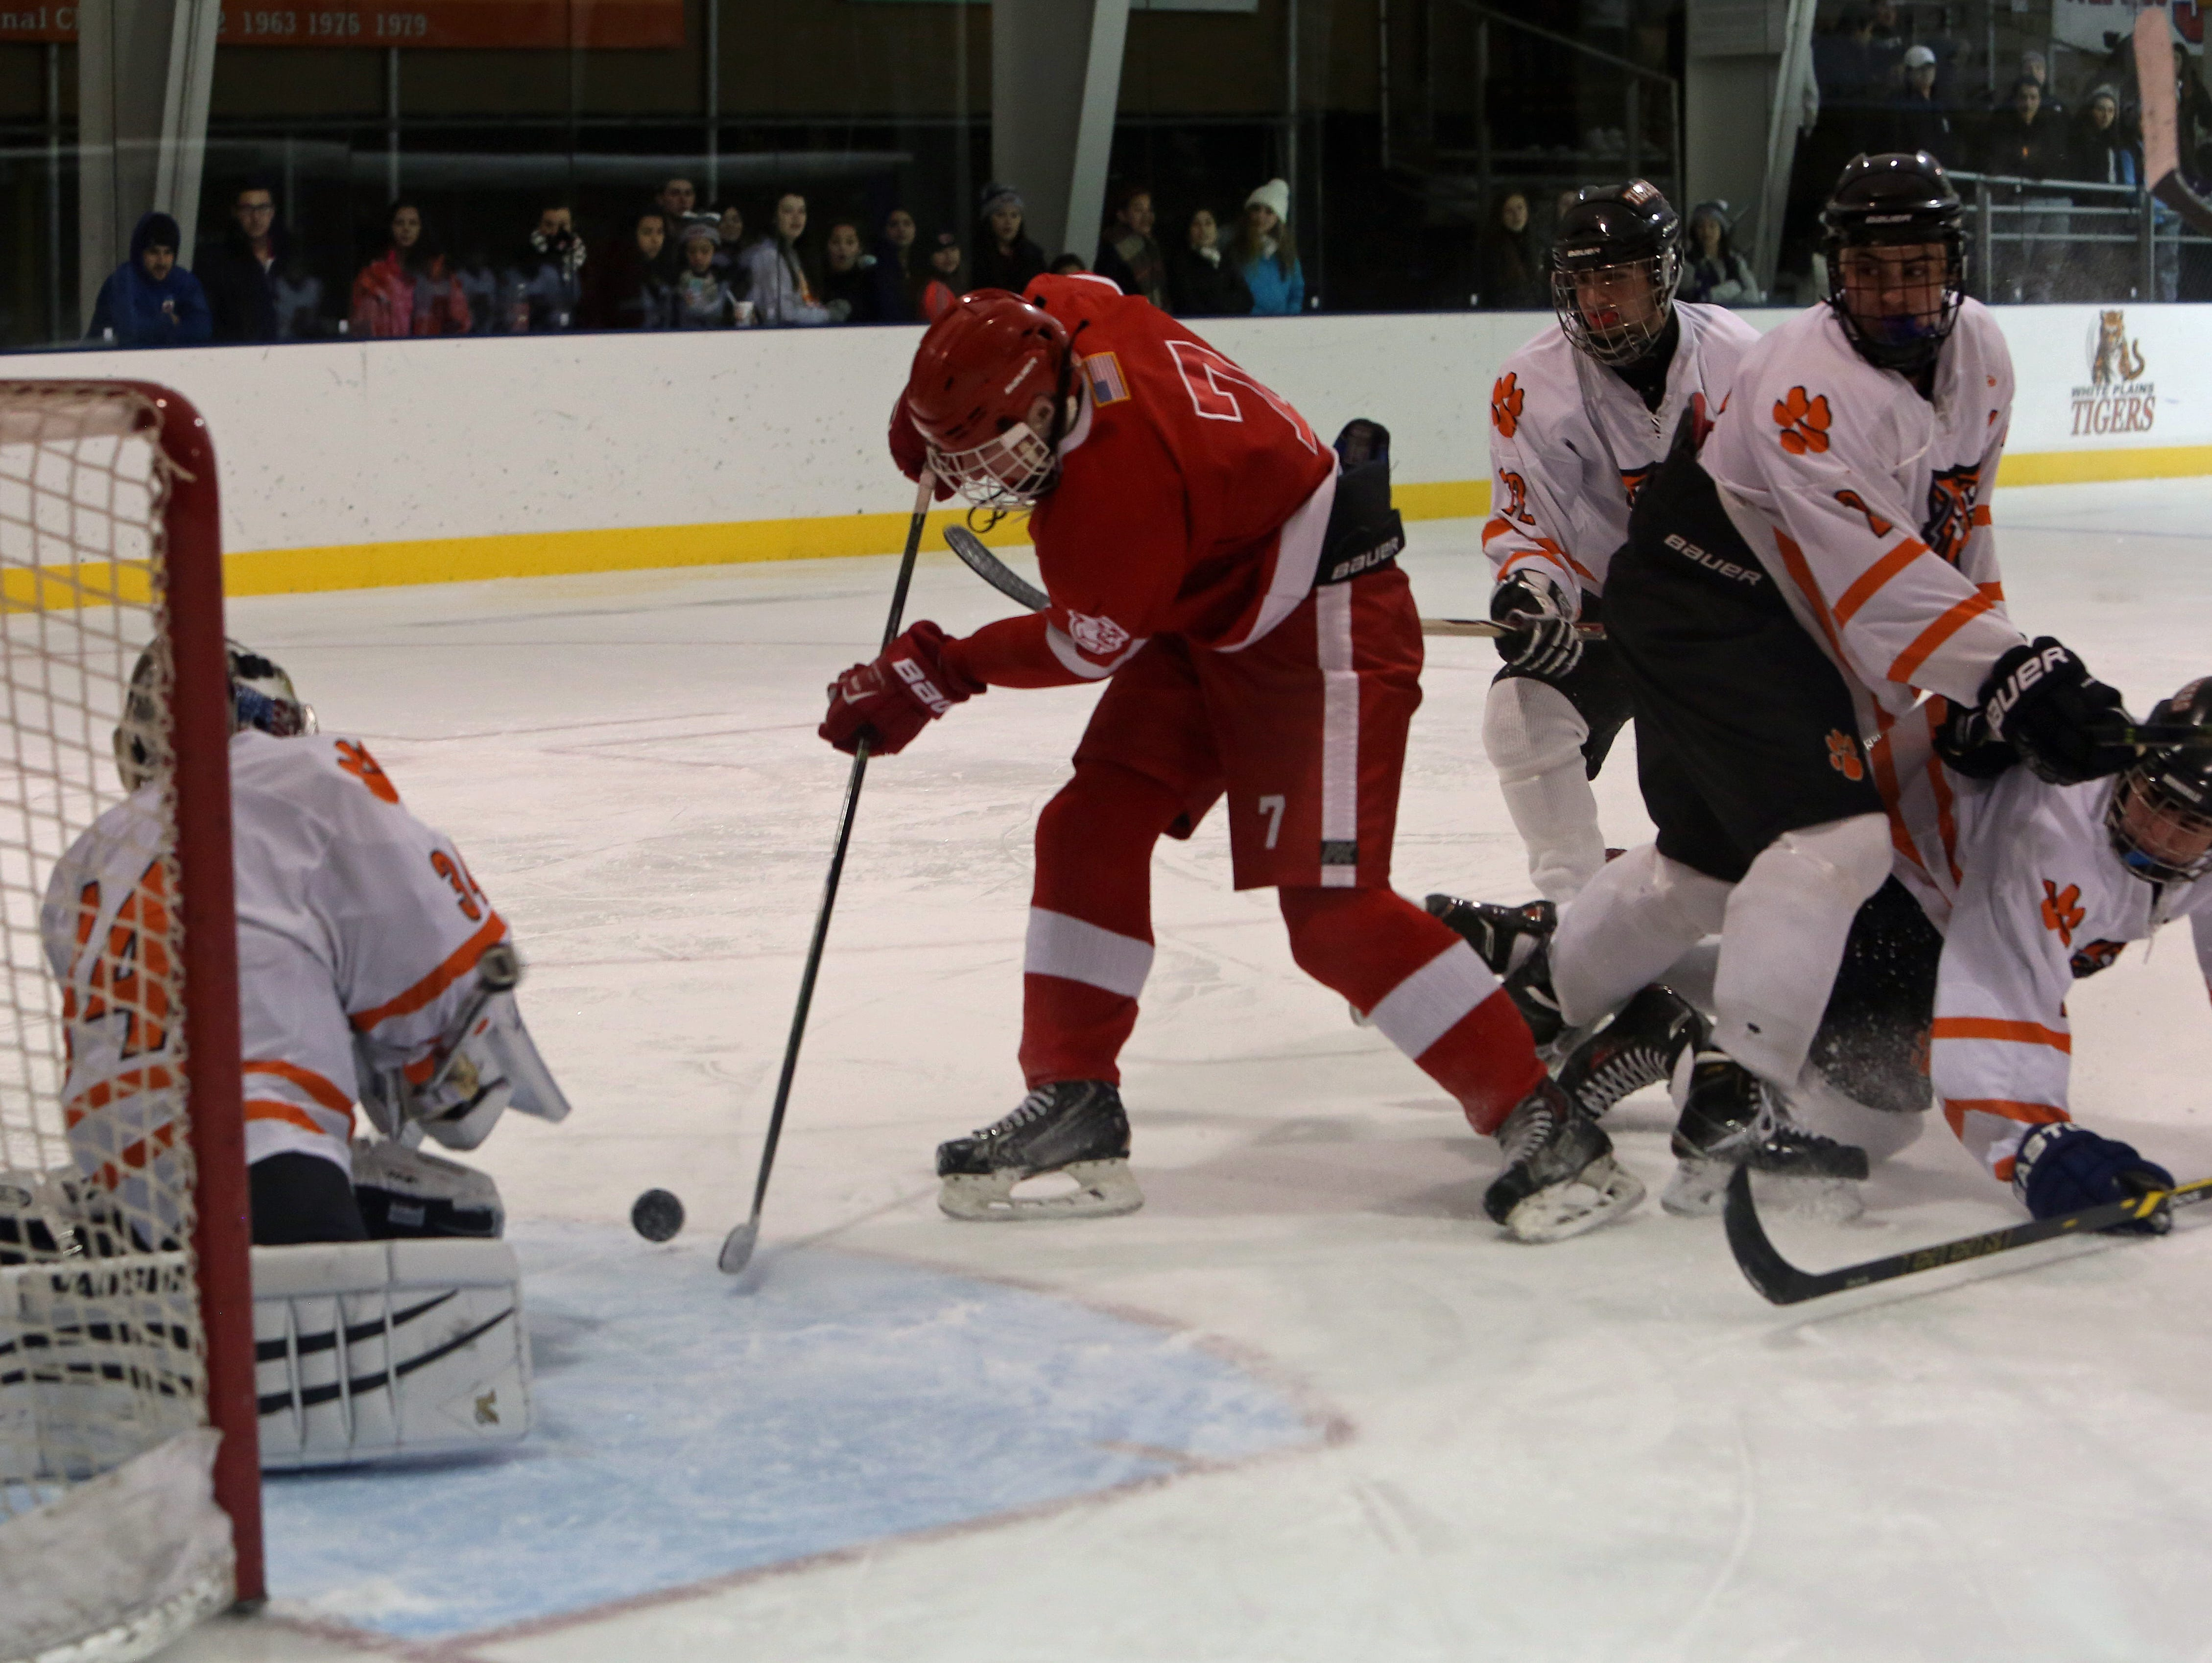 From left, White Plains' goalie Justin Schulz (34) stops a shot from North Rockland's Bryan Jensen (7) during hockey action at Ebersole Ice Rink in White Plains Jan. 7, 2016. The game ended in a 4-4 tie.